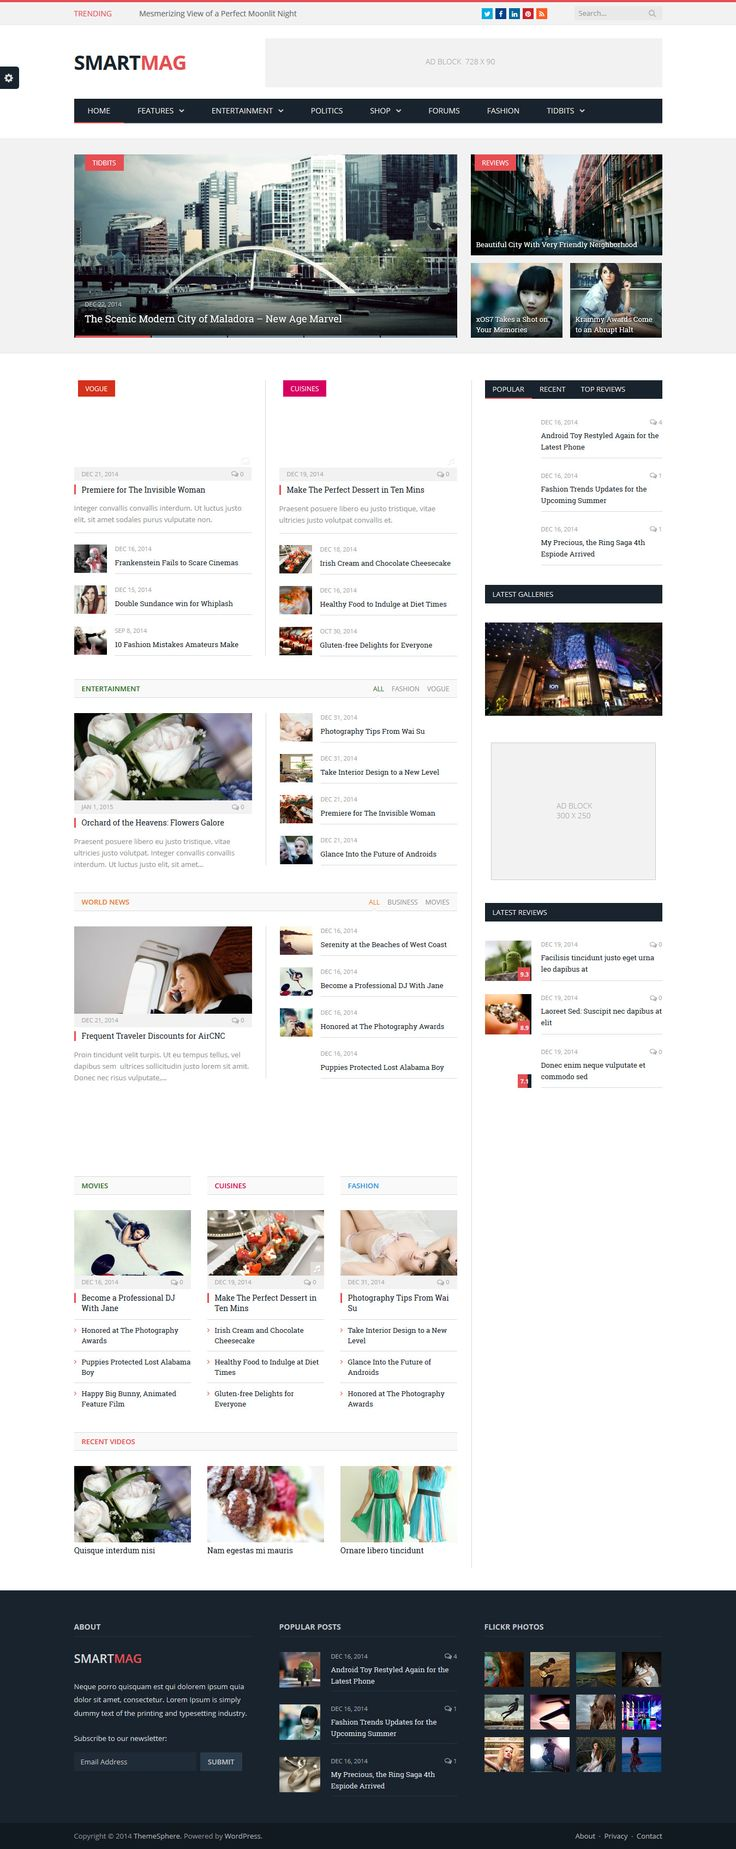 SmartMag - Responsive & Retina WordPress Magazine Theme #wordpress Live Preview and Download: http://themeforest.net/item/smartmag-responsive-retina-wordpress-magazine/6652608?ref=ksioks